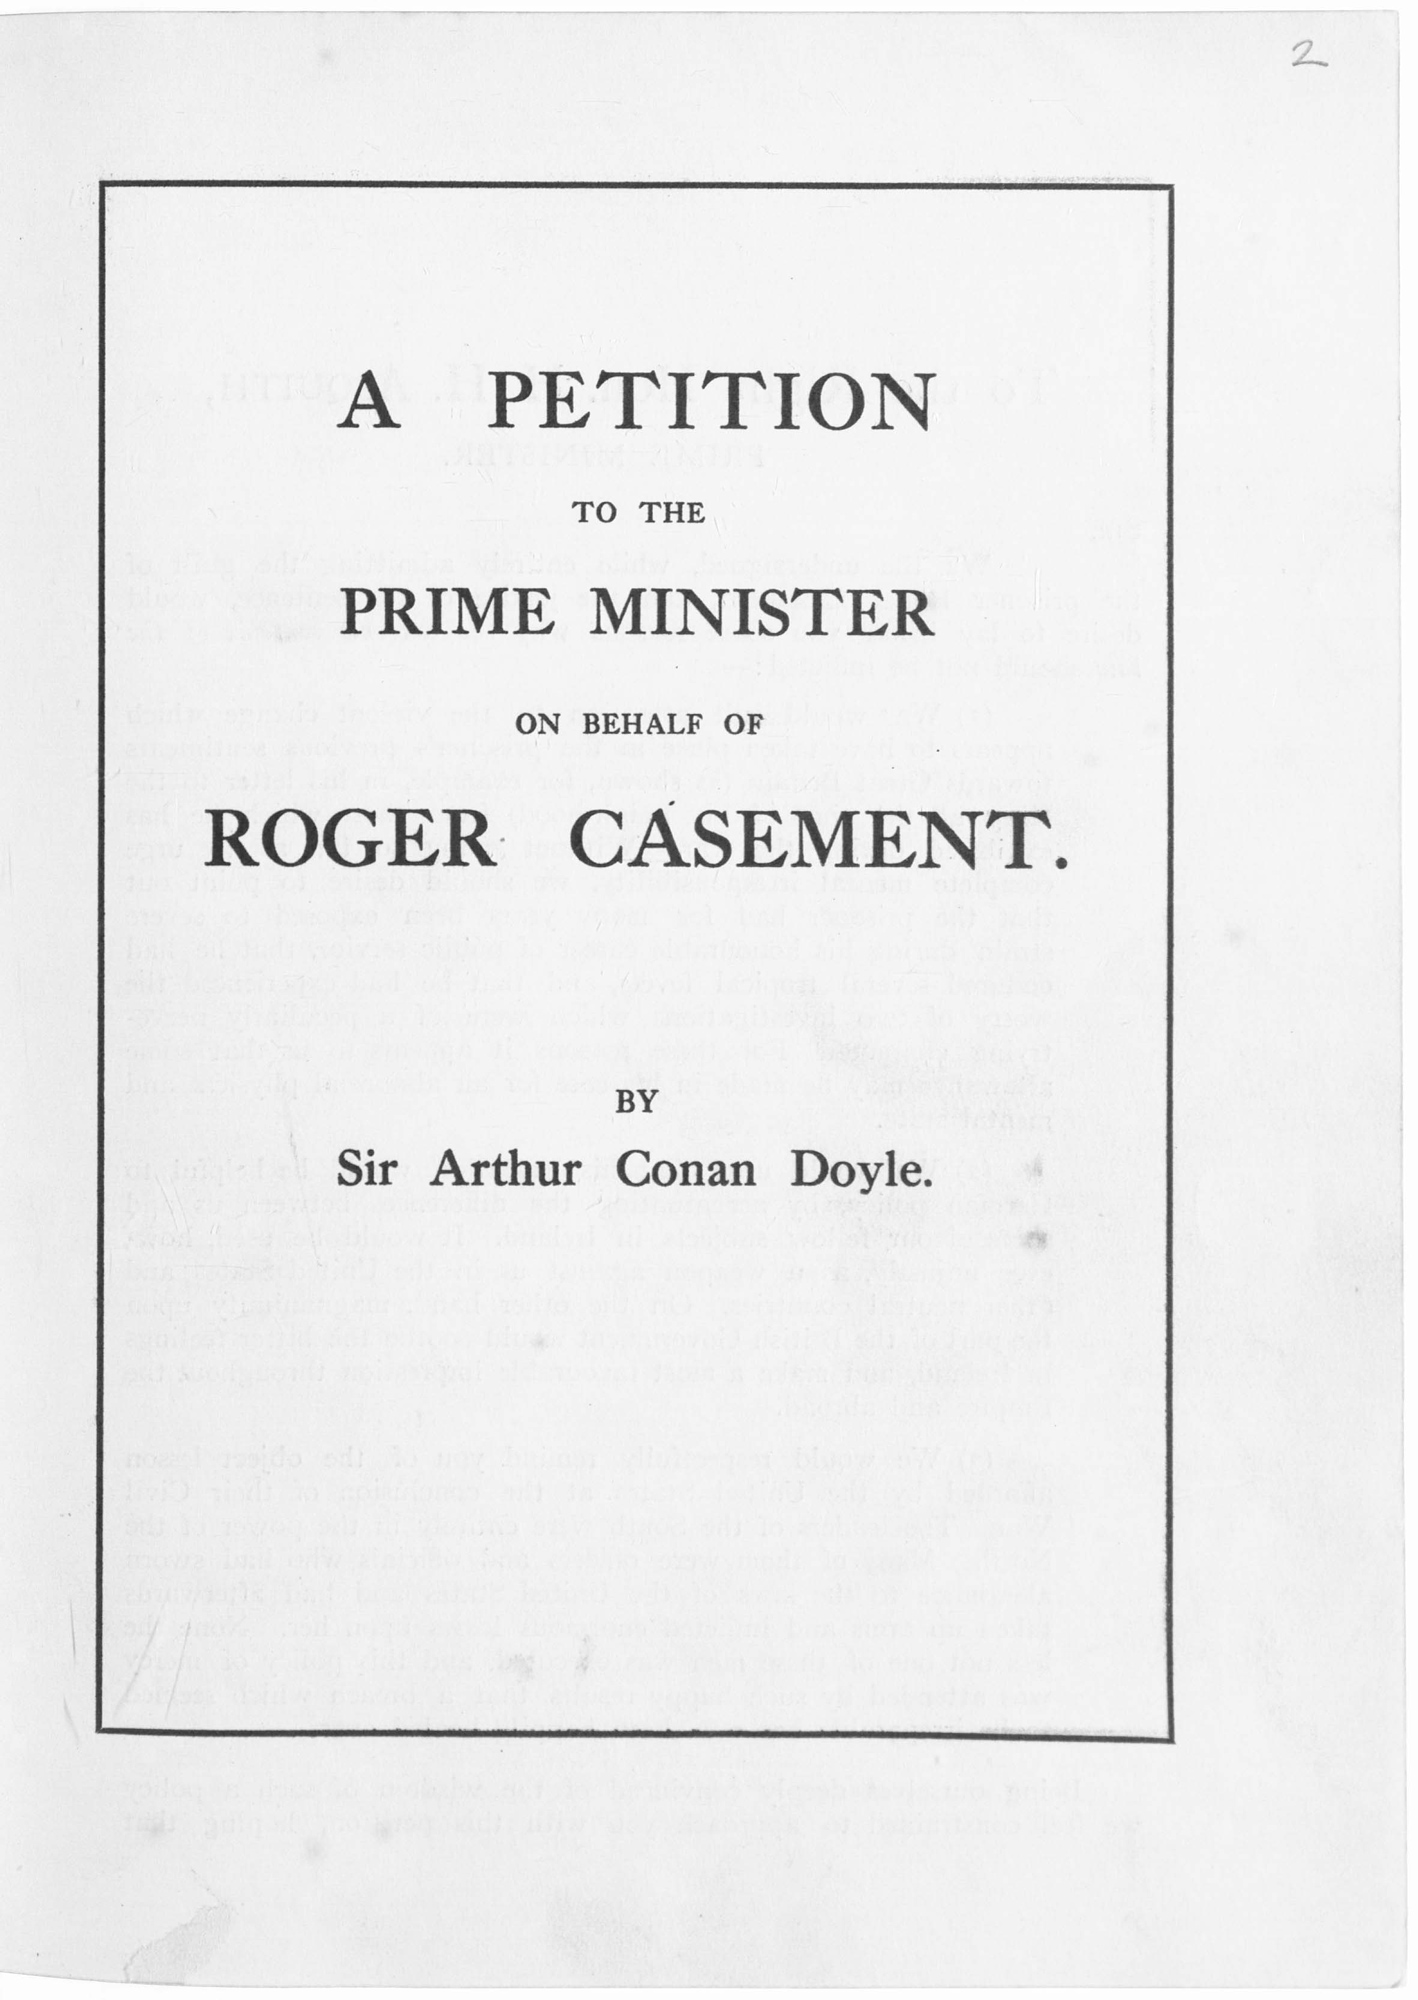 Letter from Sir Conan Doyle